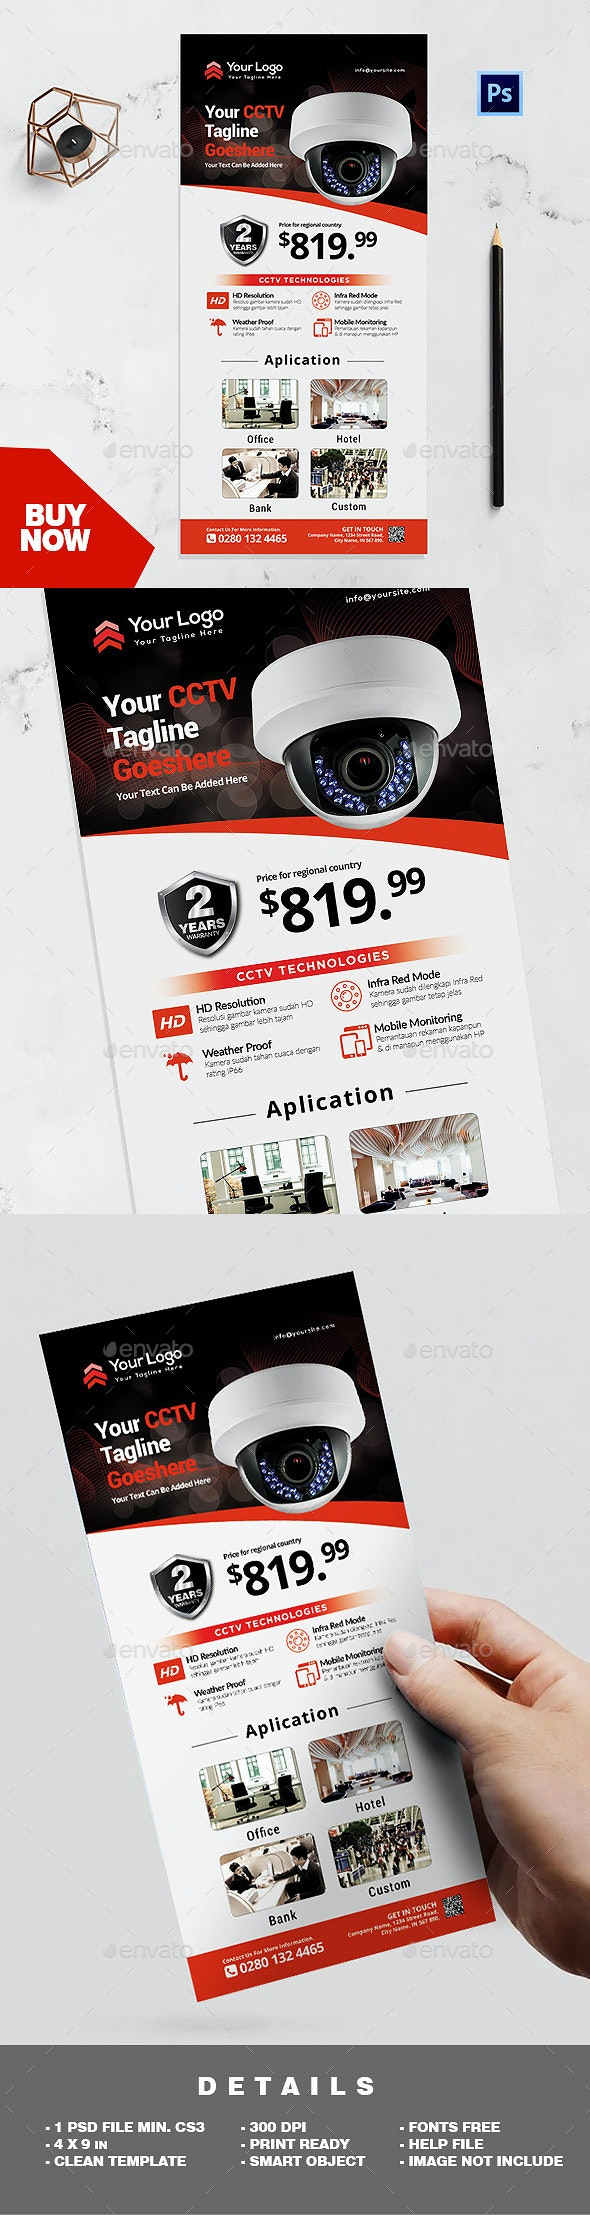 Rack Card Template - CCTV Product Promotion Flyer - Corporate Flyers